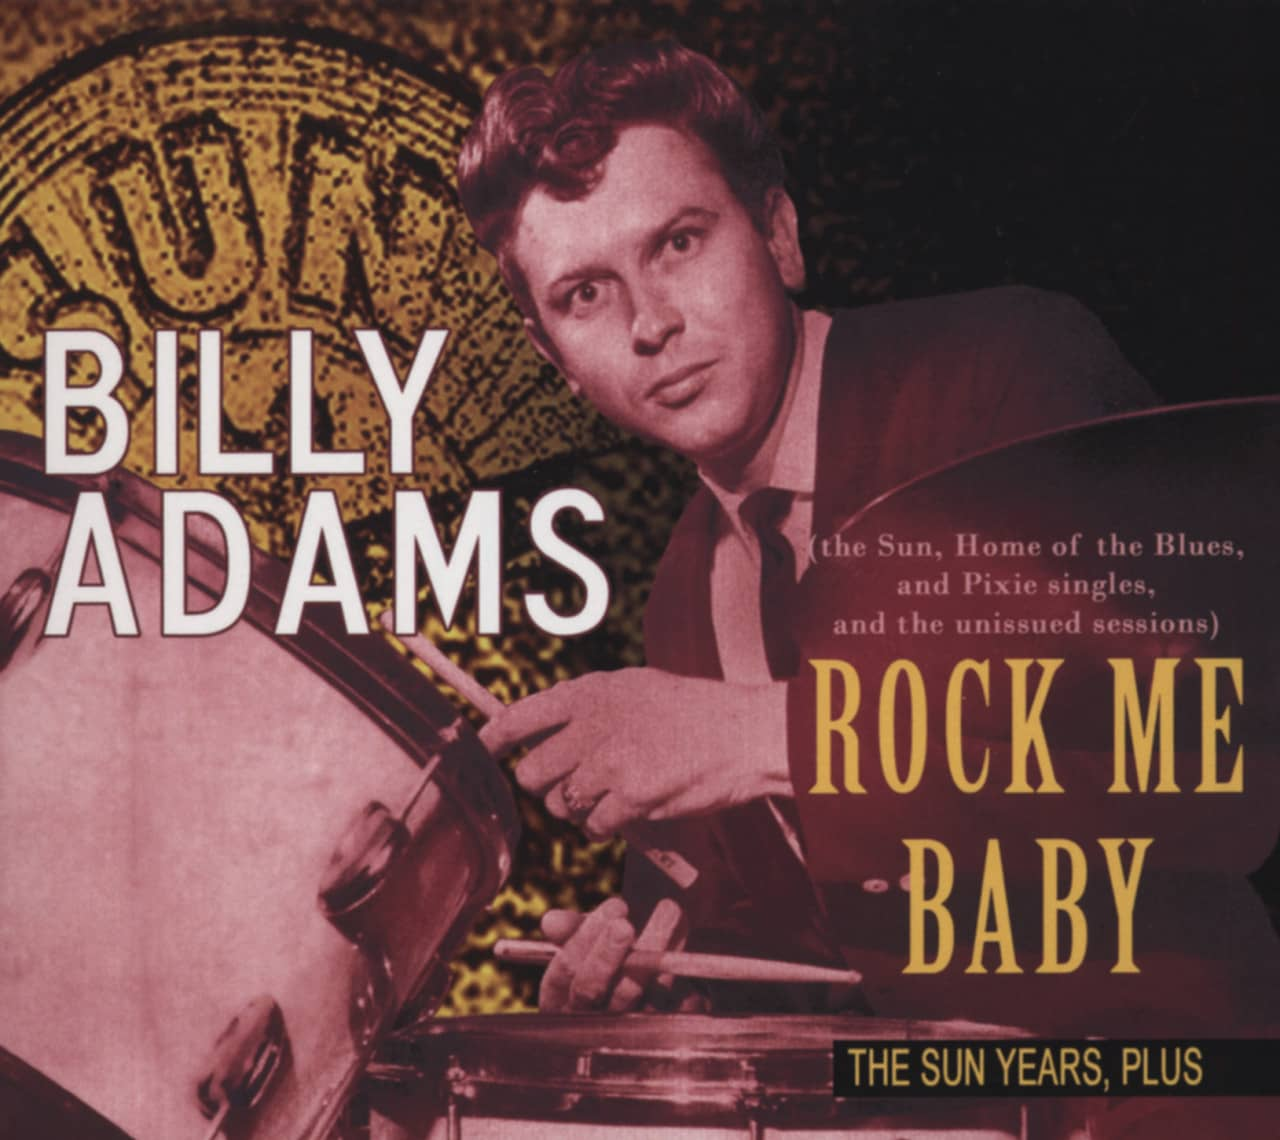 Billy Adams - Rock Me Baby, The Sun Years Plus